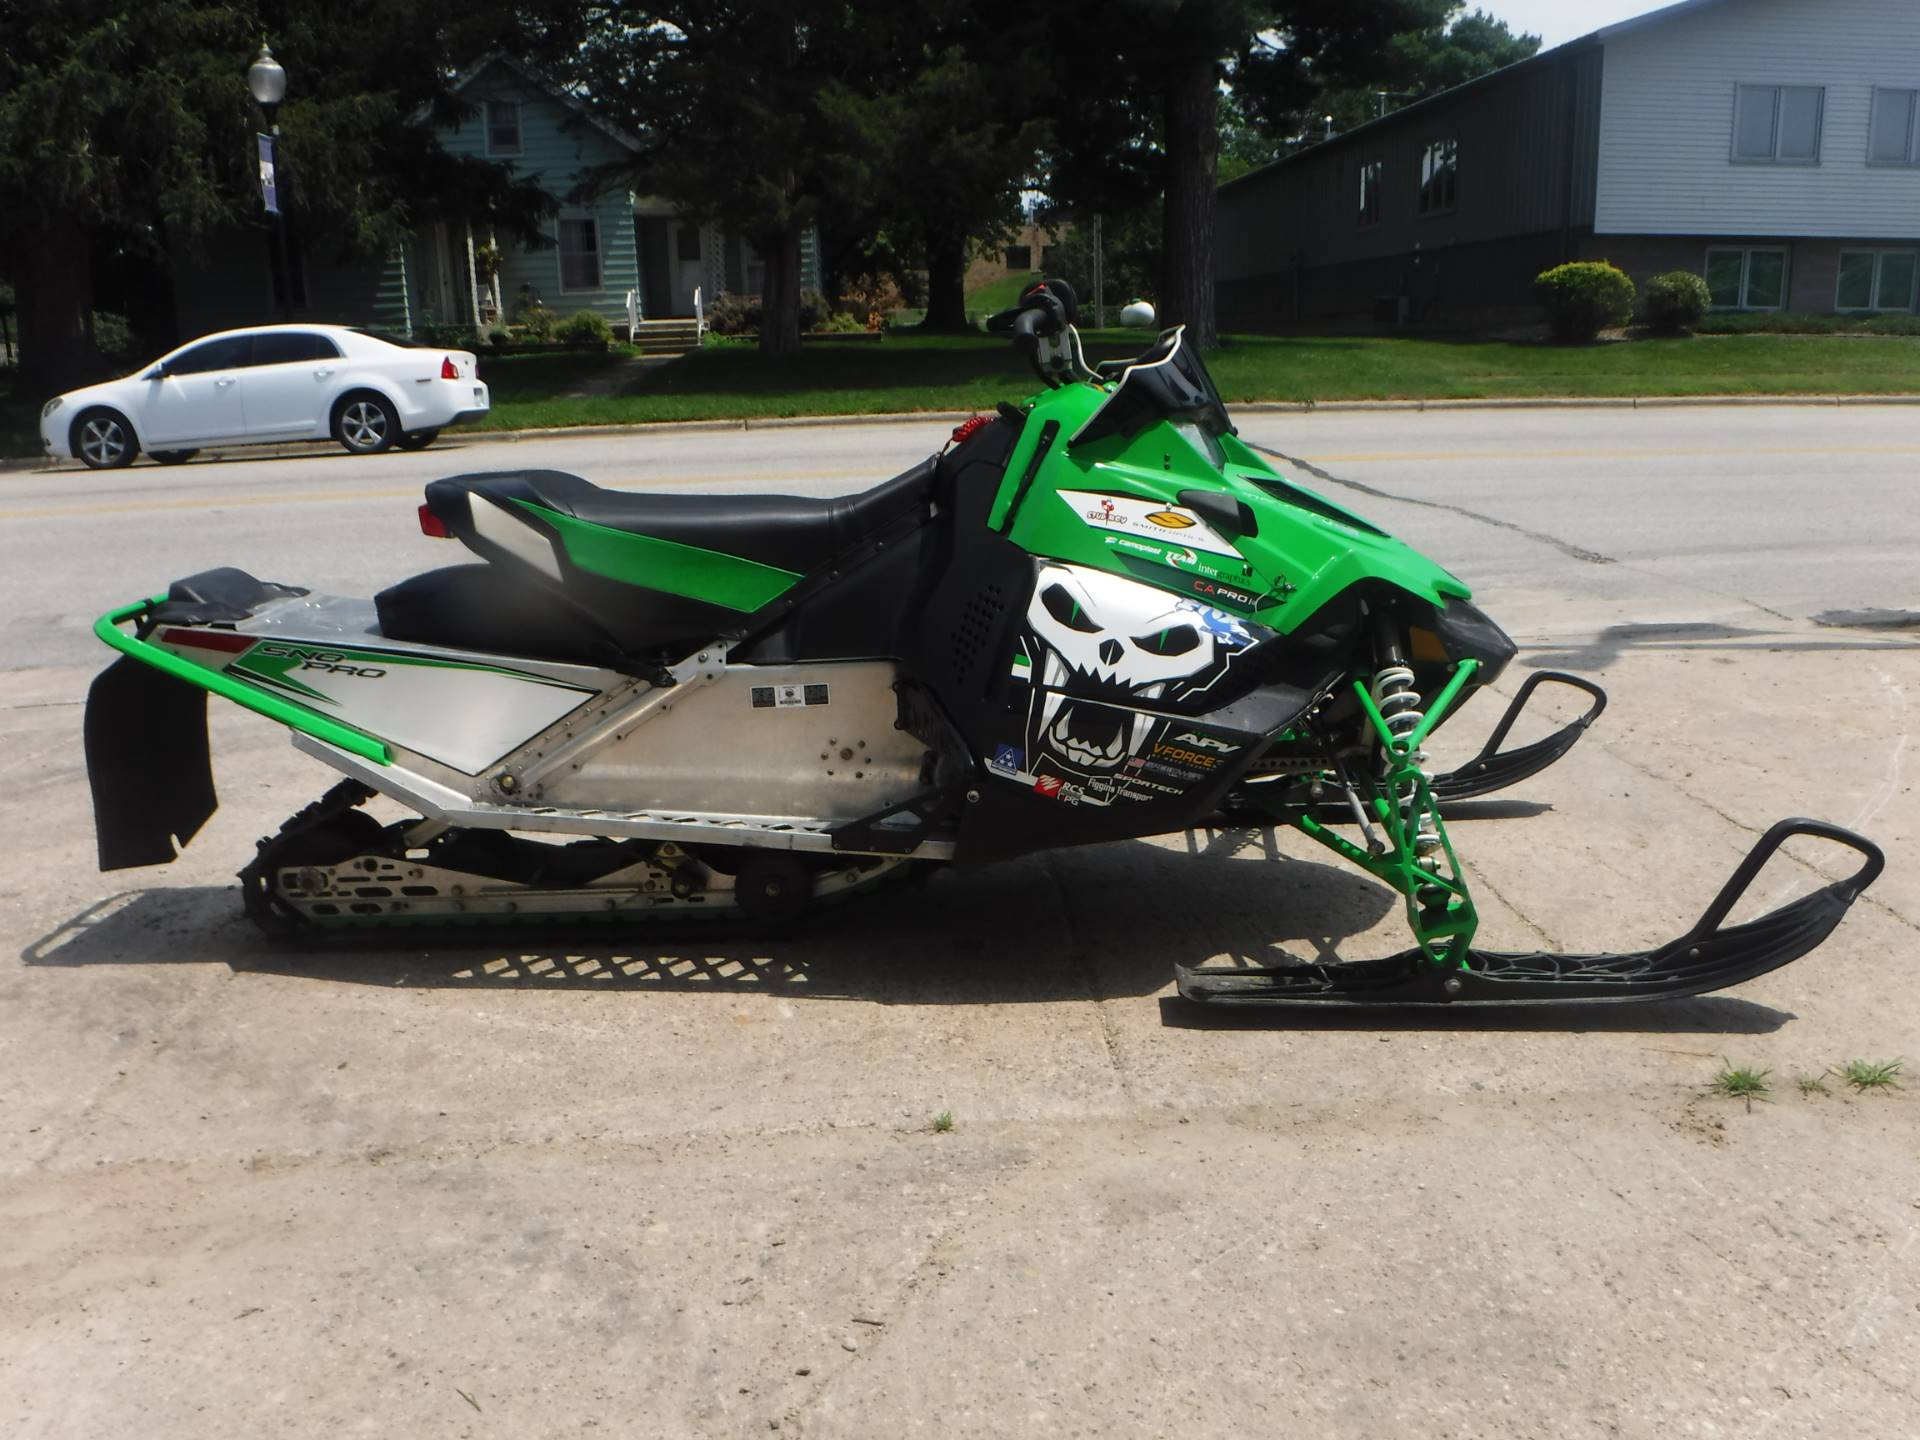 2012 Arctic Cat Sno Pro® 500 in Mazeppa, Minnesota - Photo 2